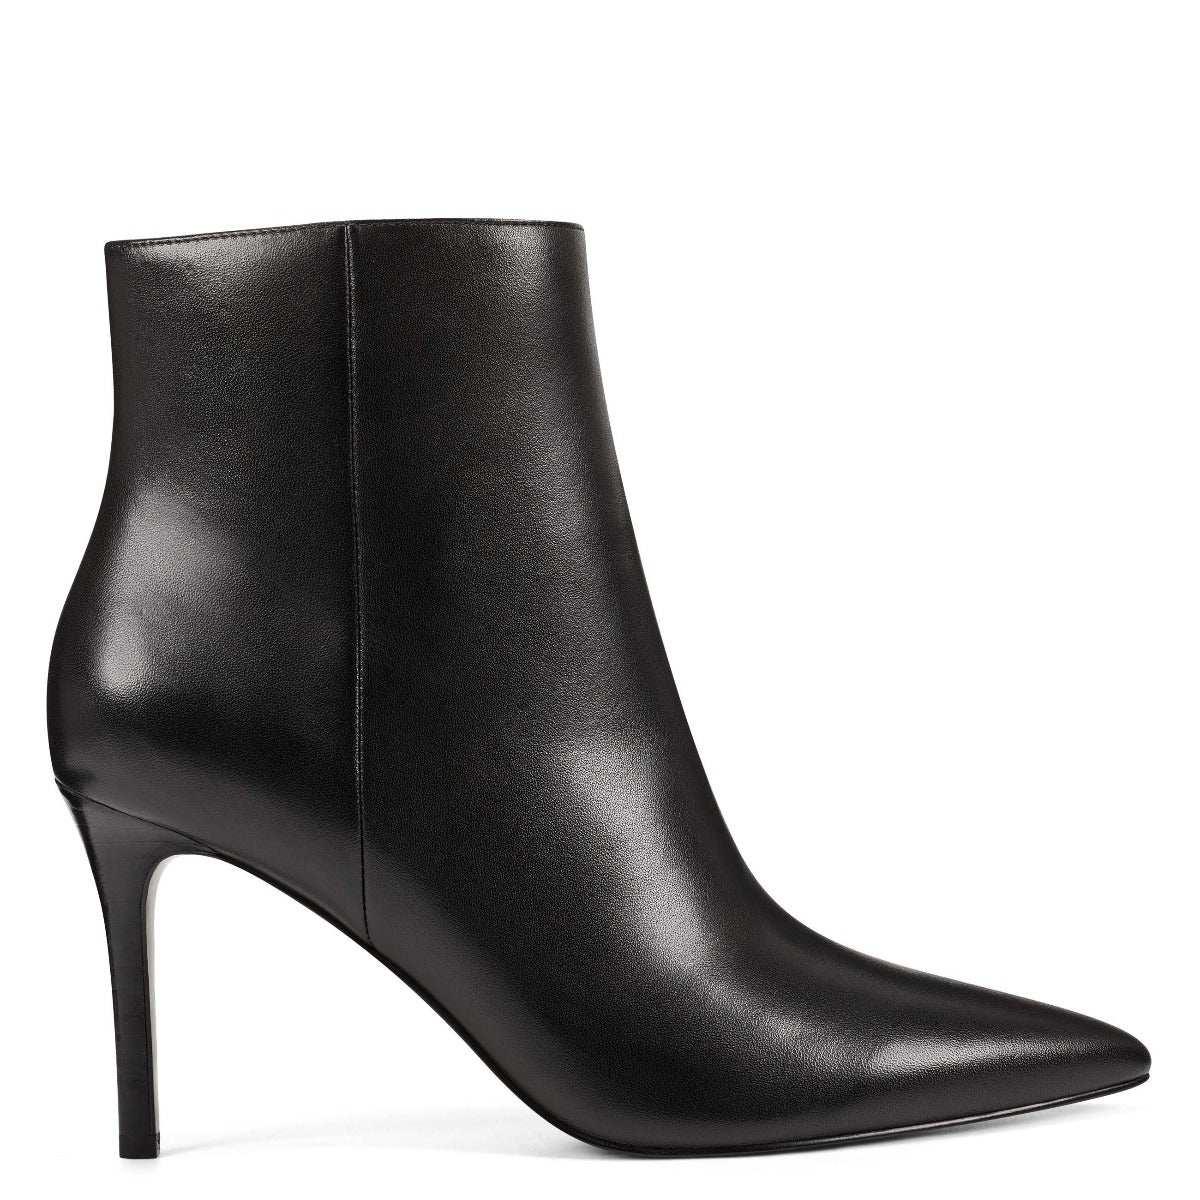 Fhayla pointy toe bootie